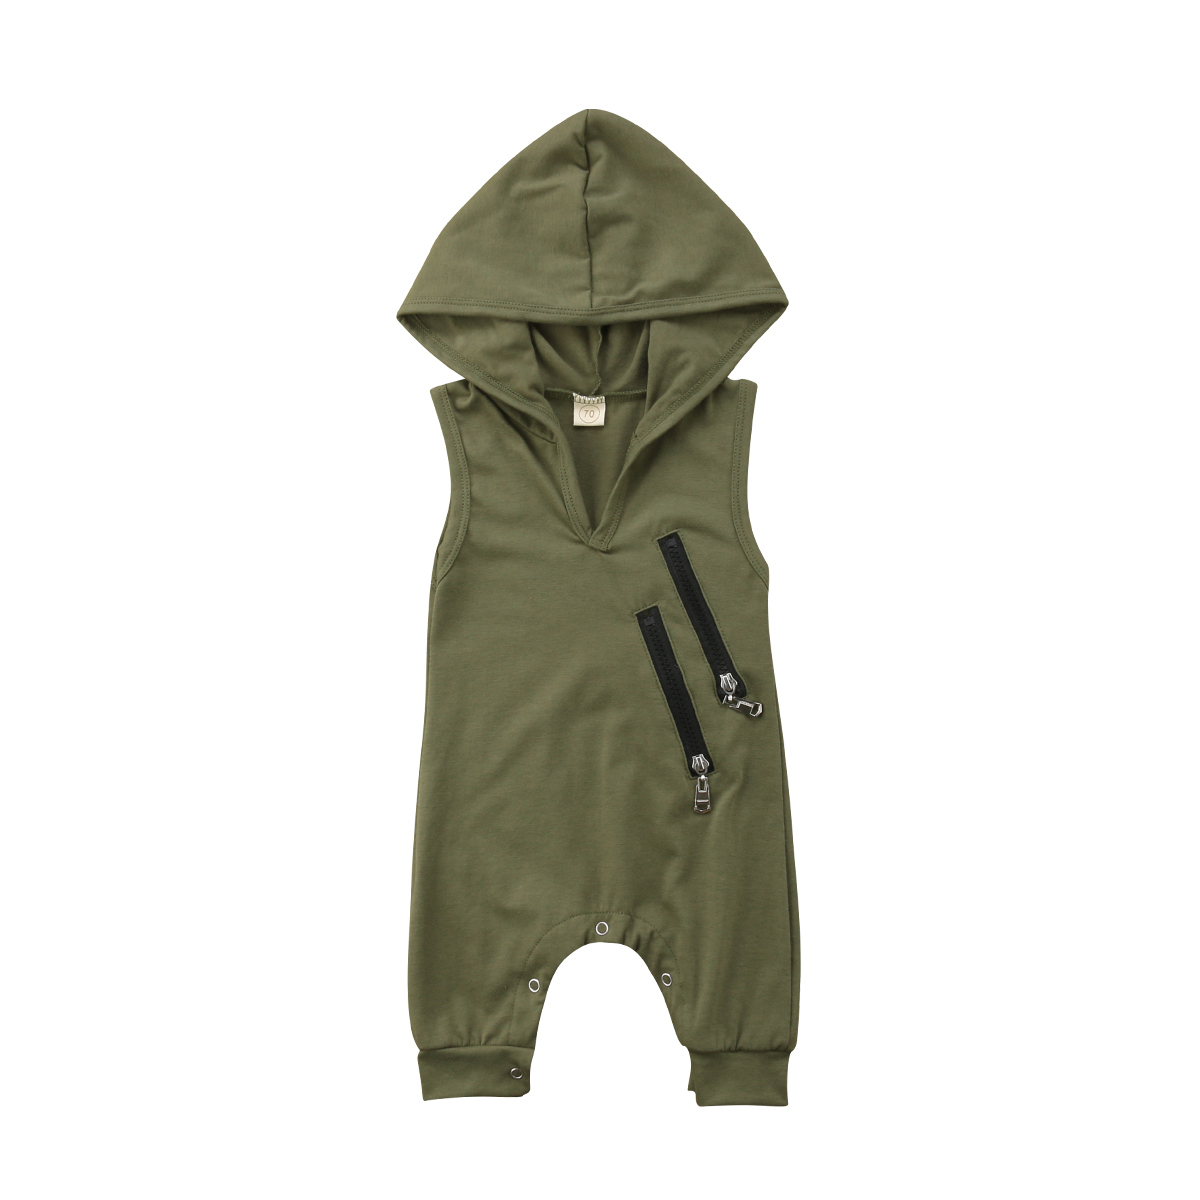 Sleeveless Toddler Baby Boys Girls Hooded   Romper   Zipper V neck Jumpsuit Outfit Clothes 0-24M